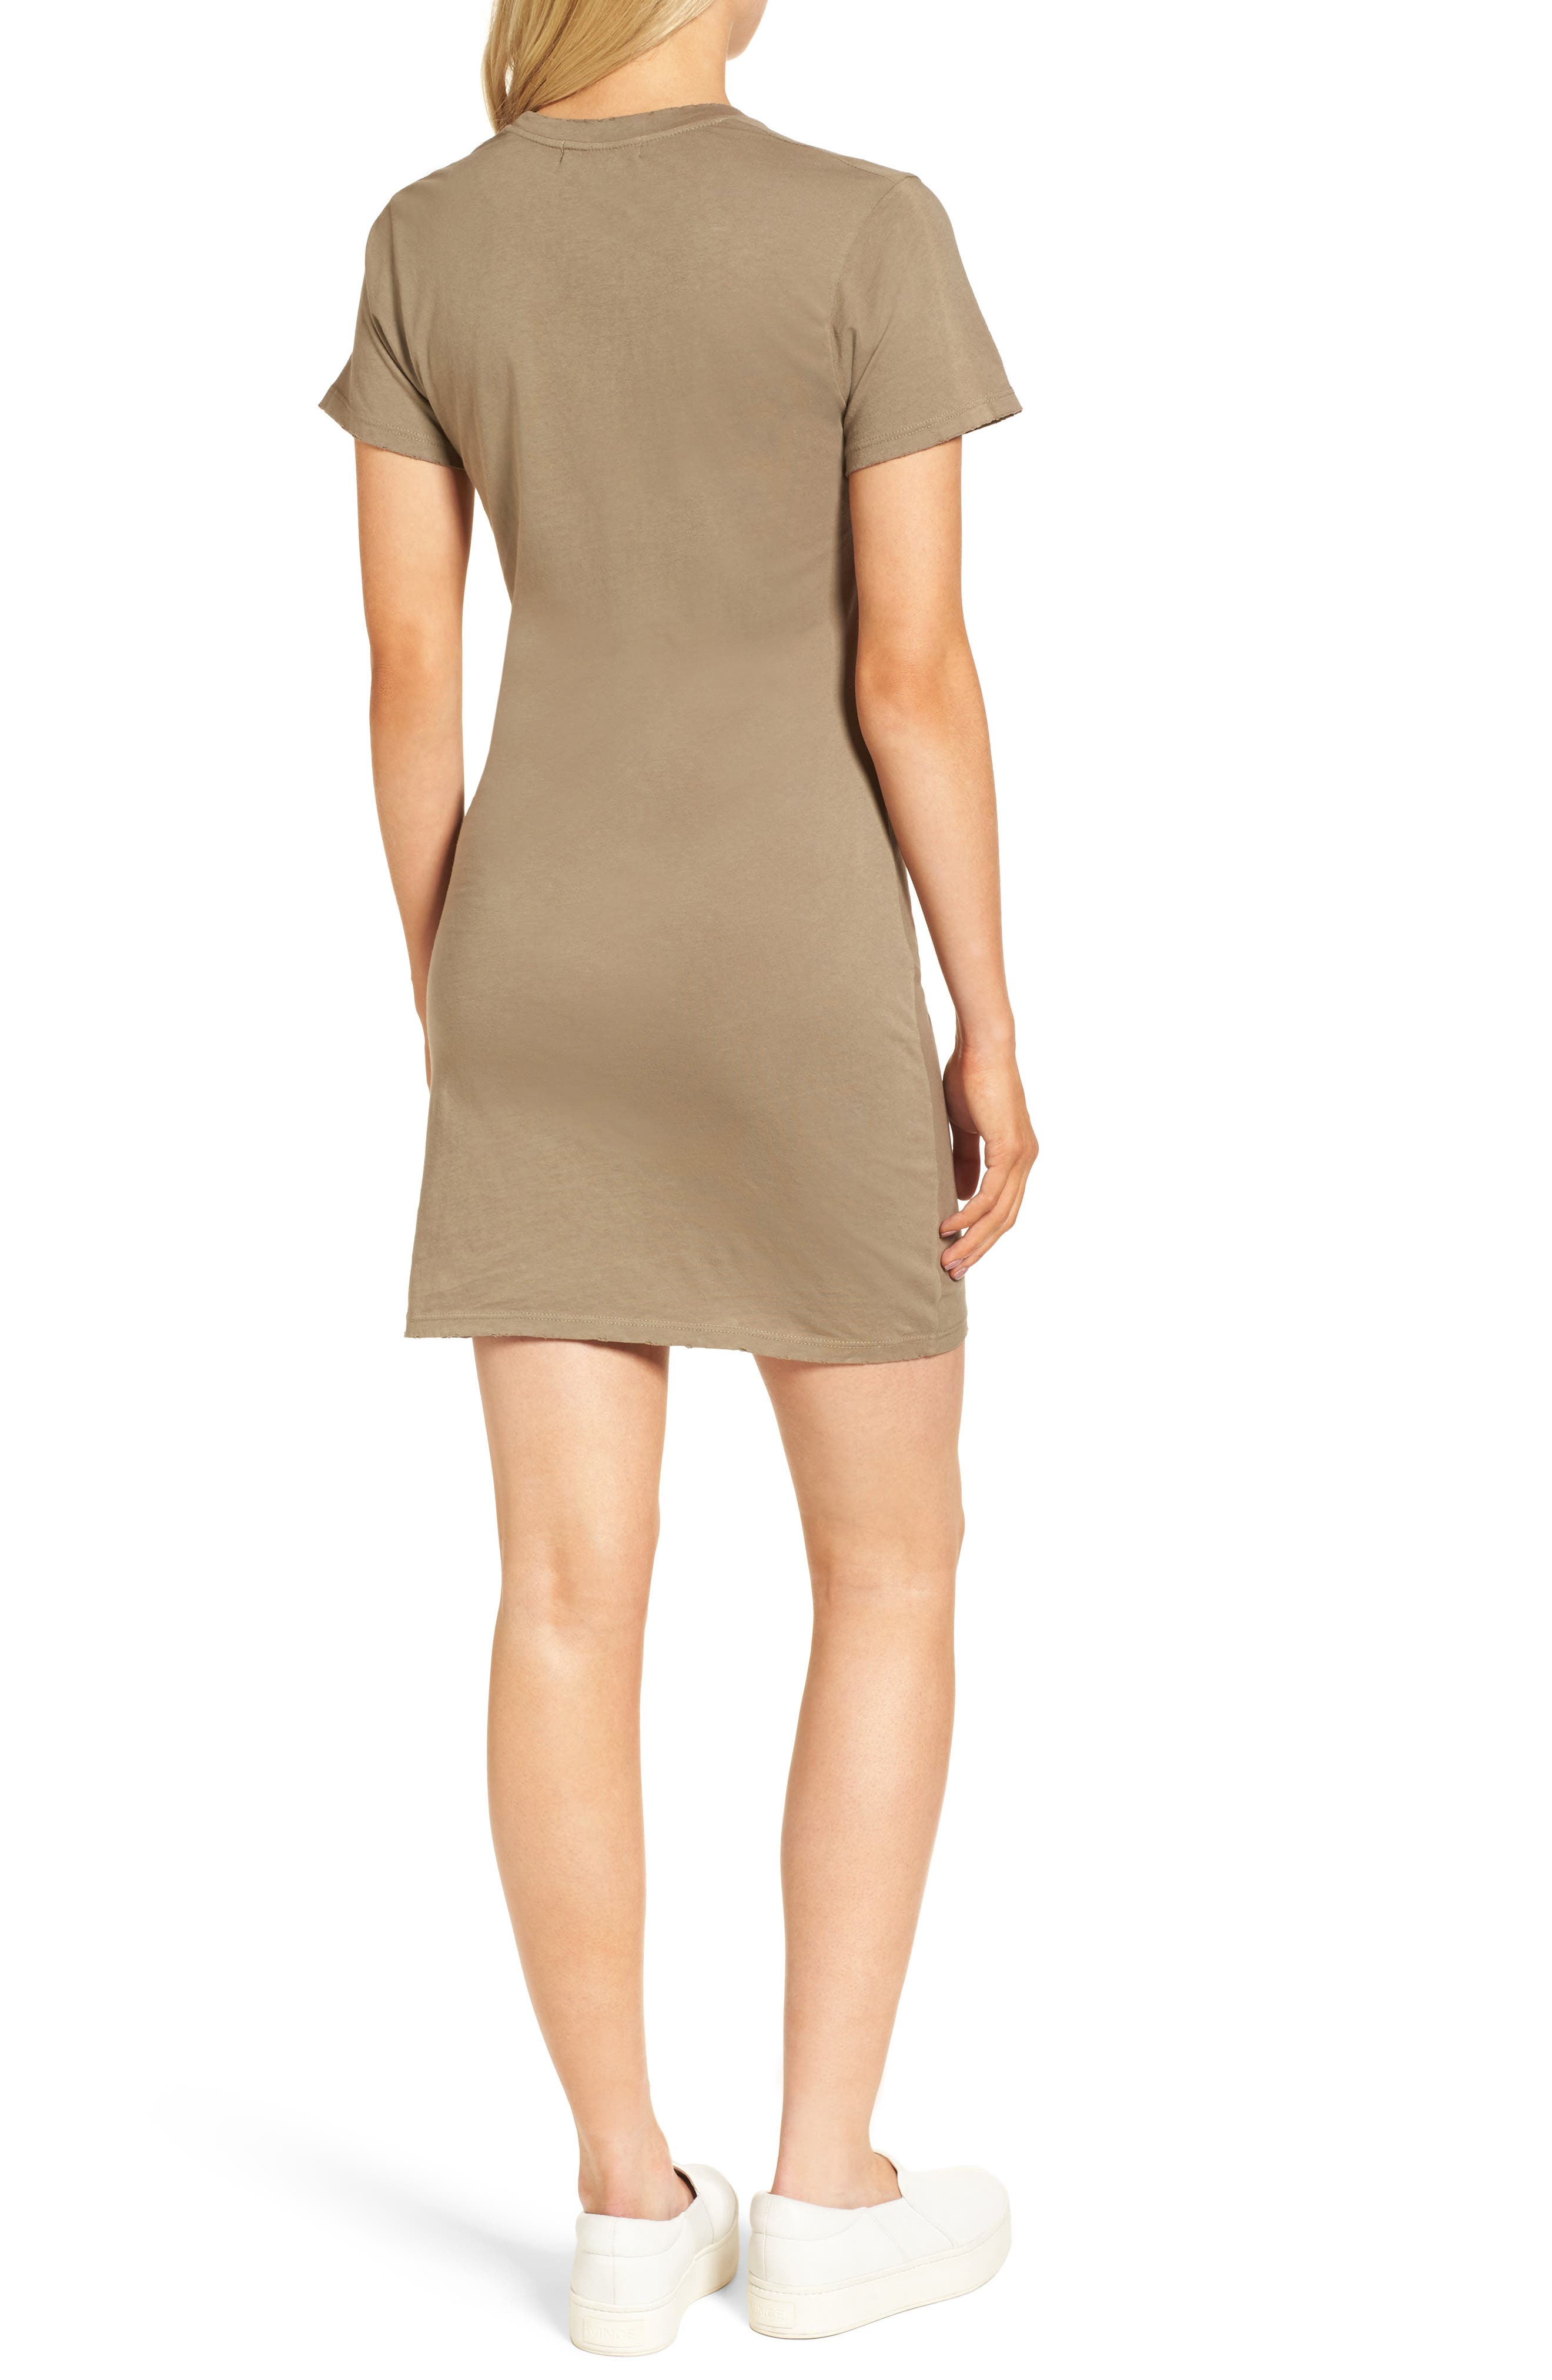 Jazz Knotted T-Shirt Dress,                             Alternate thumbnail 2, color,                             Army